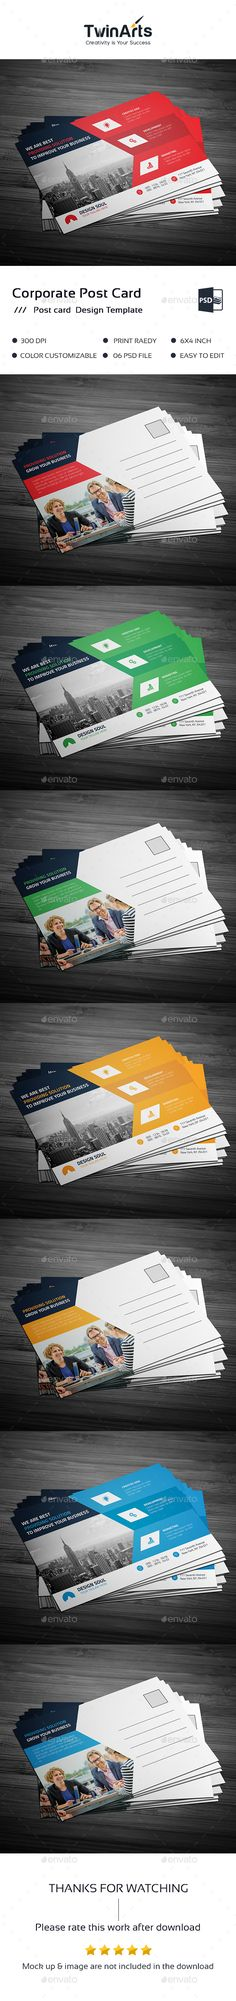 Post Card Template PSD. Download here: http://graphicriver.net/item/post-card/16700382?ref=ksioks